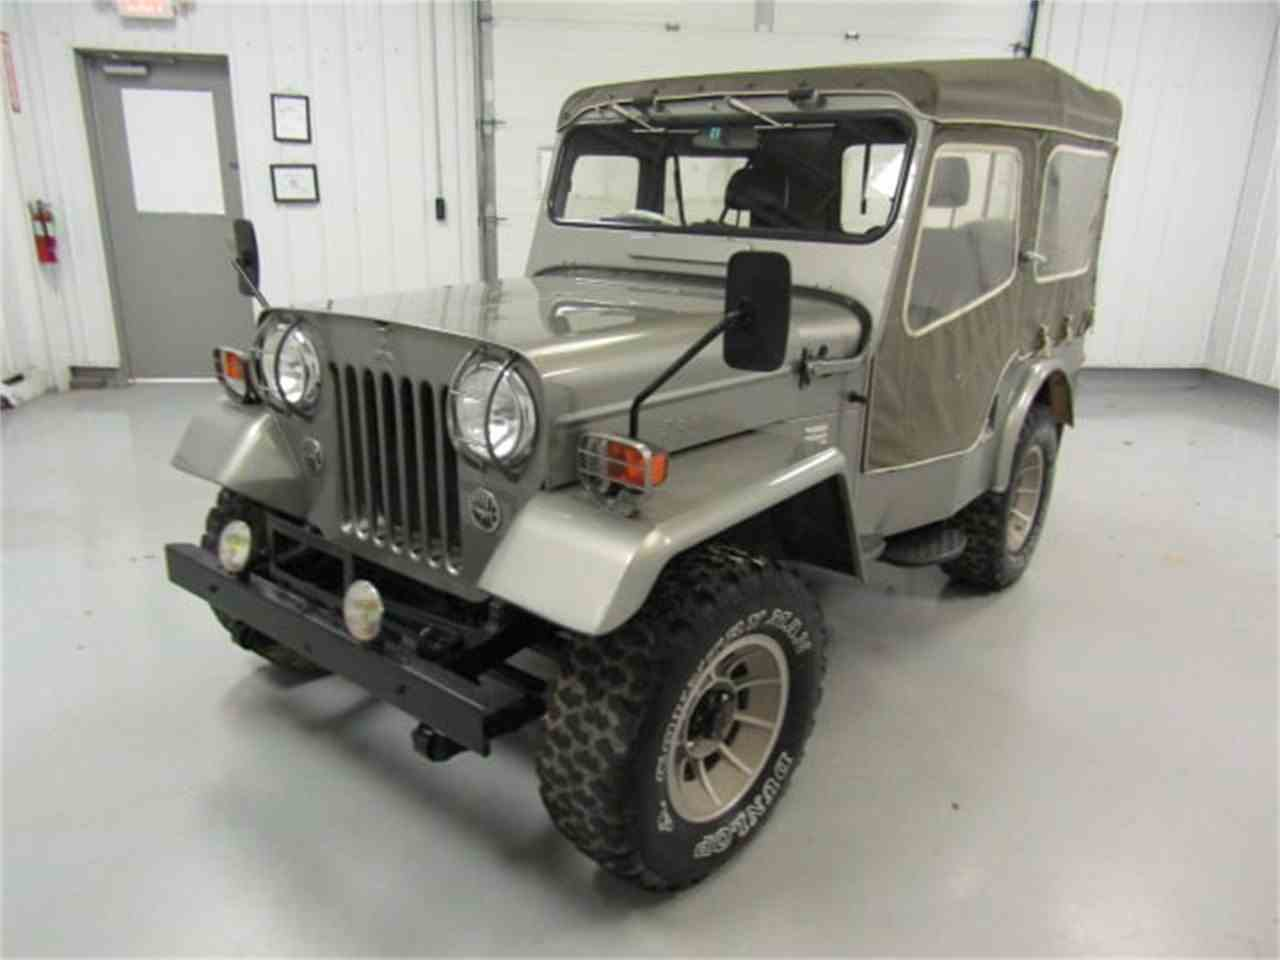 Large Picture of '79 Jeep located in Christiansburg Virginia Offered by Duncan Imports & Classic Cars - JM3M